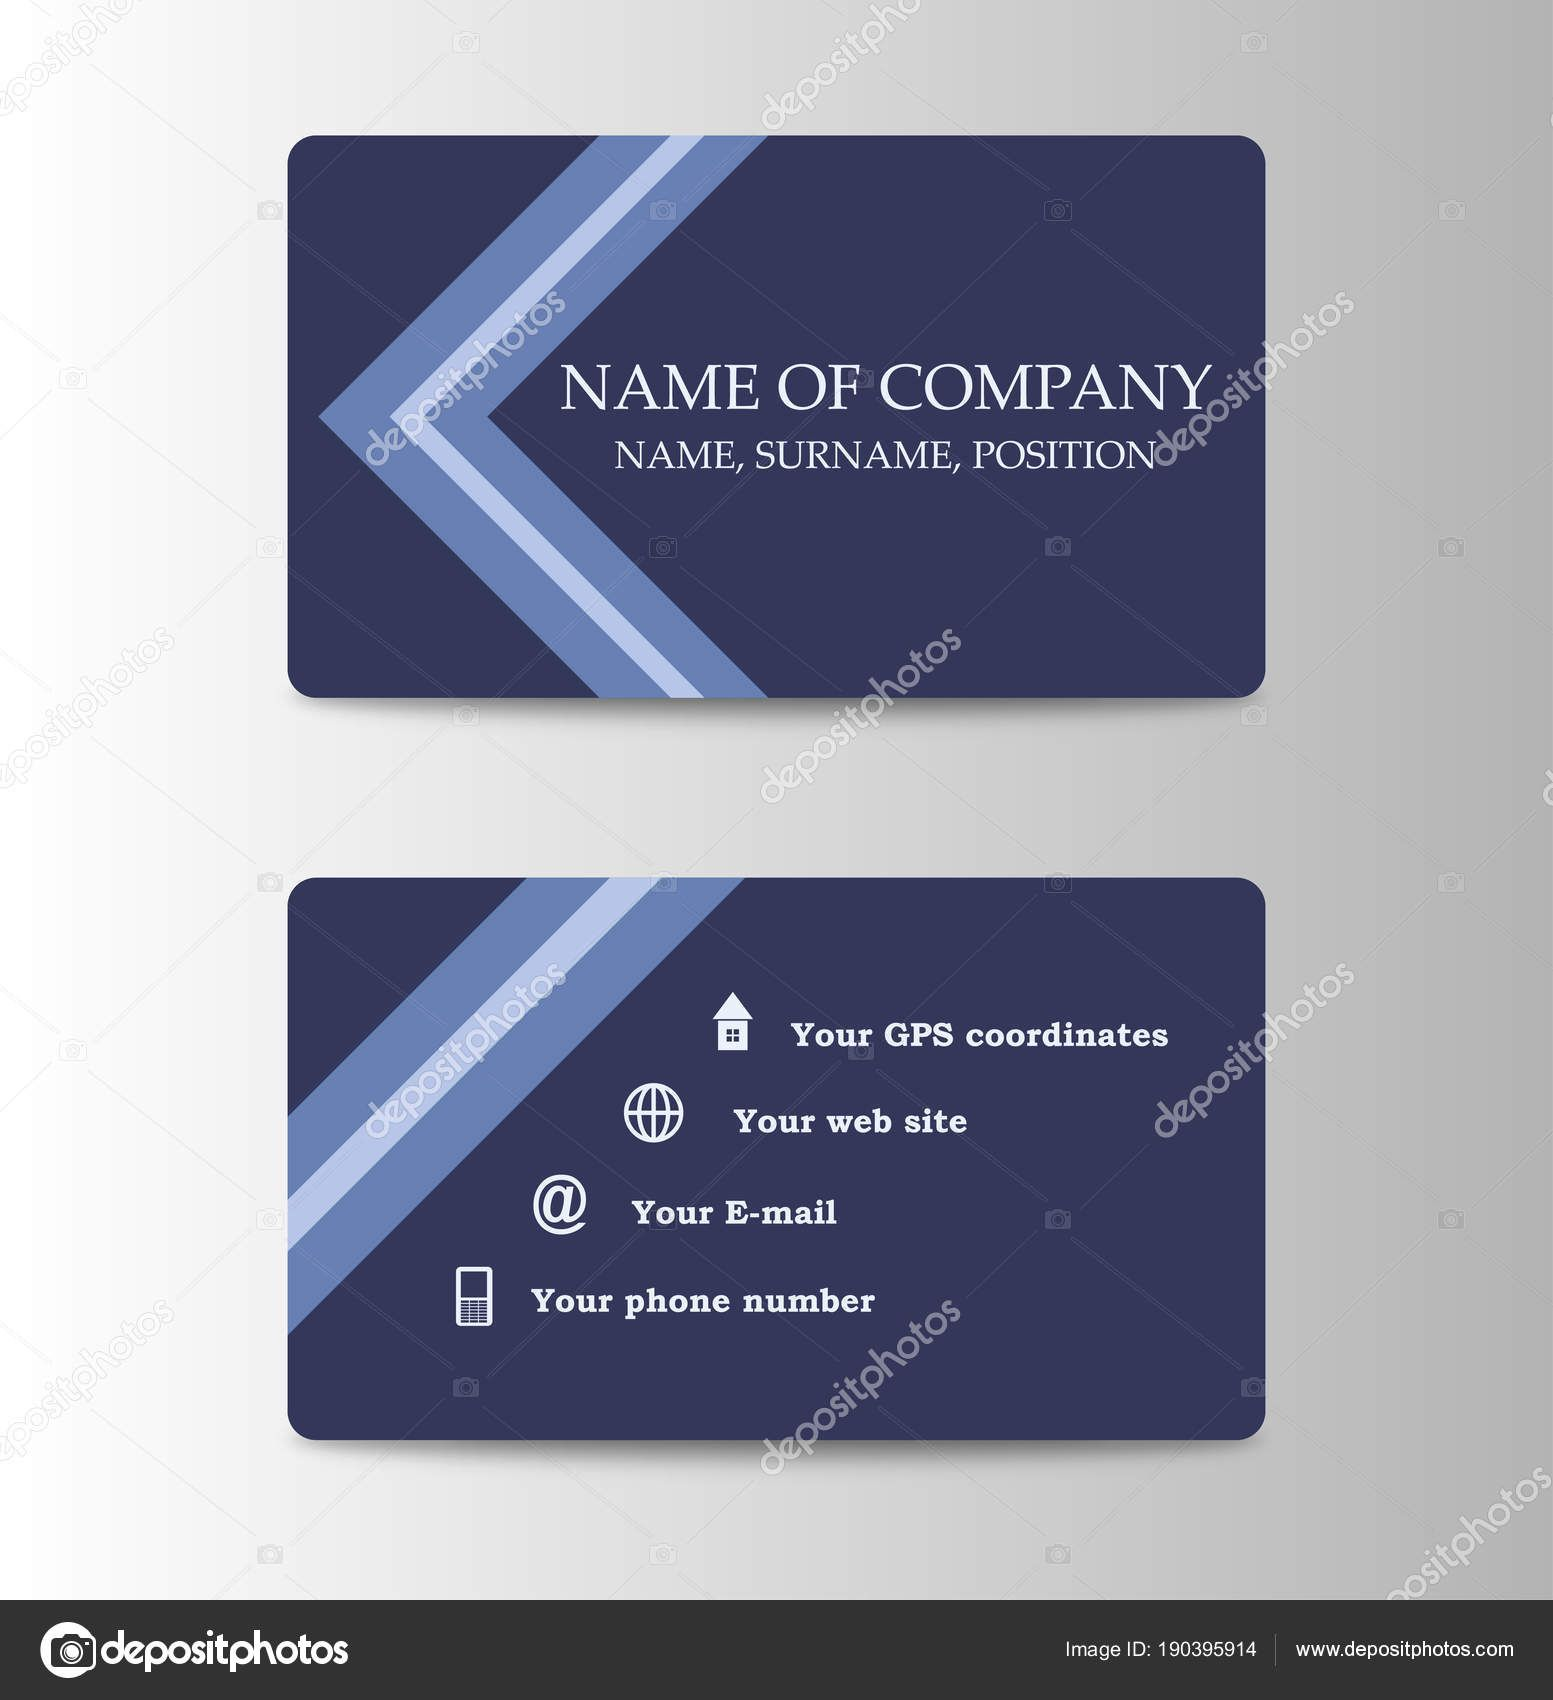 The Inspiring Corporate Id Card Design Template Personal Id Card For Pertaining To Personal Identification Ca In 2020 Corporate Id Card Design Printing Business Cards